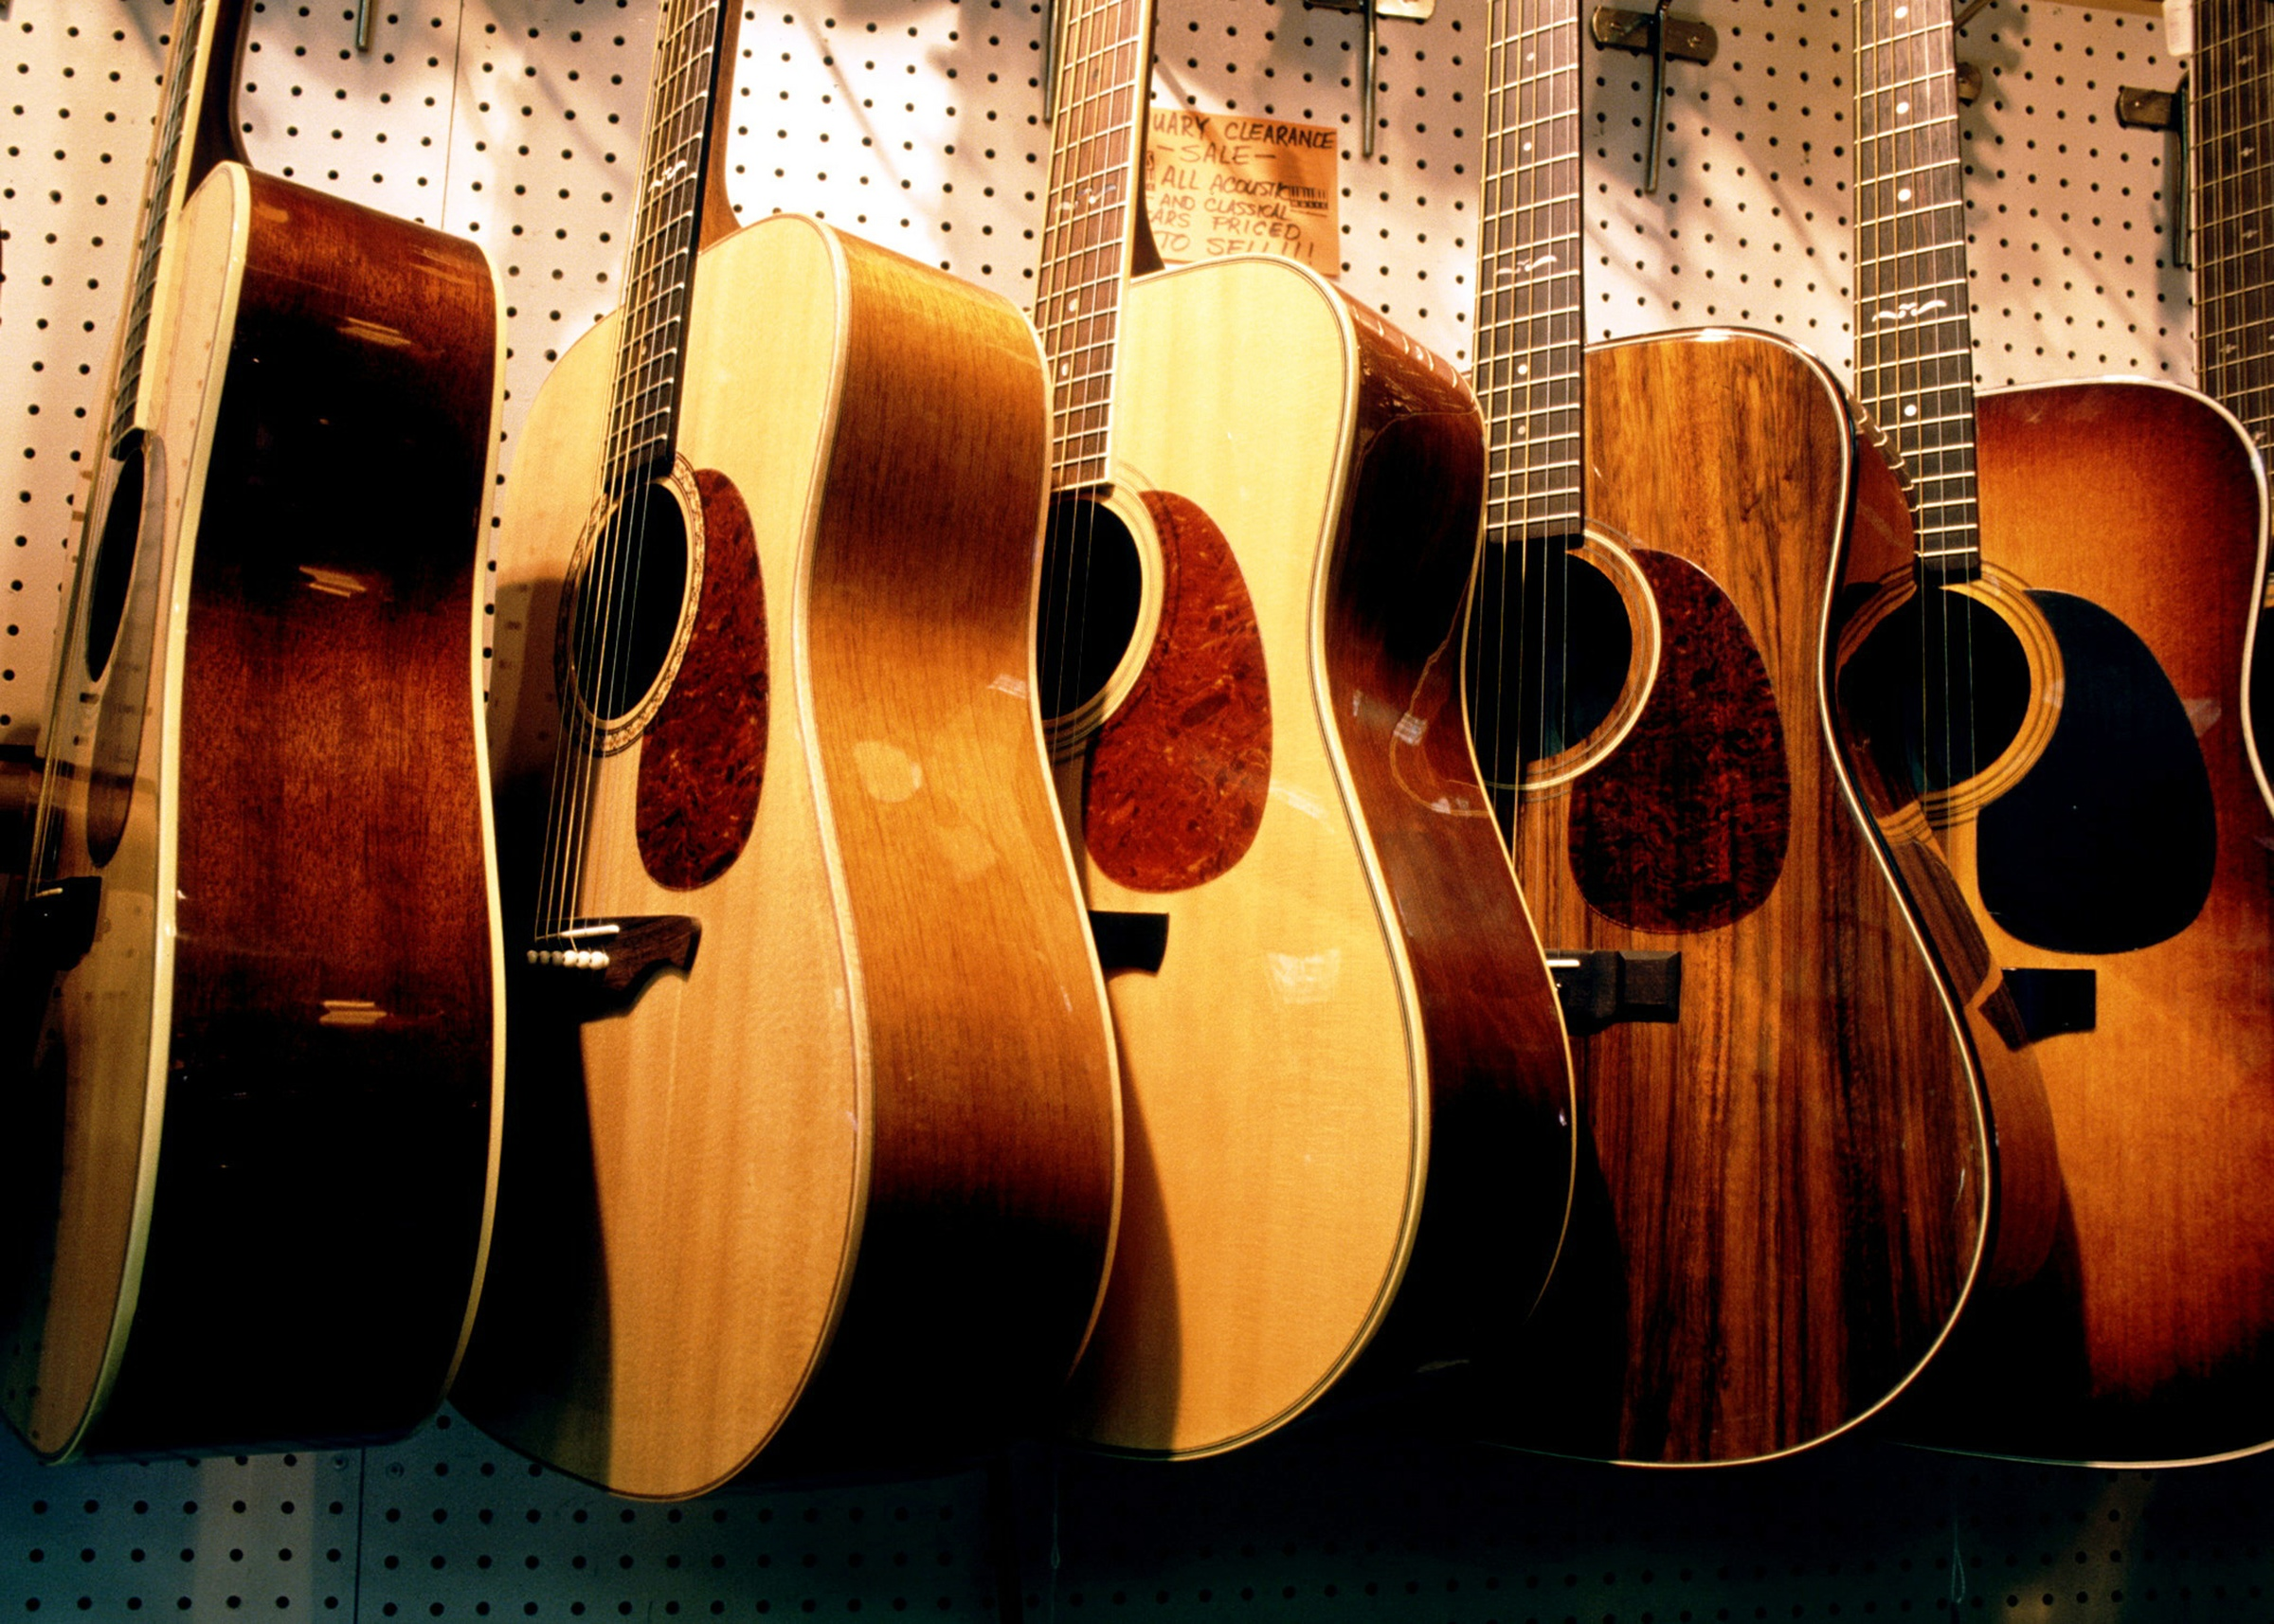 Looking for a guitar teacher? We have locations in Denver and Lakewood.